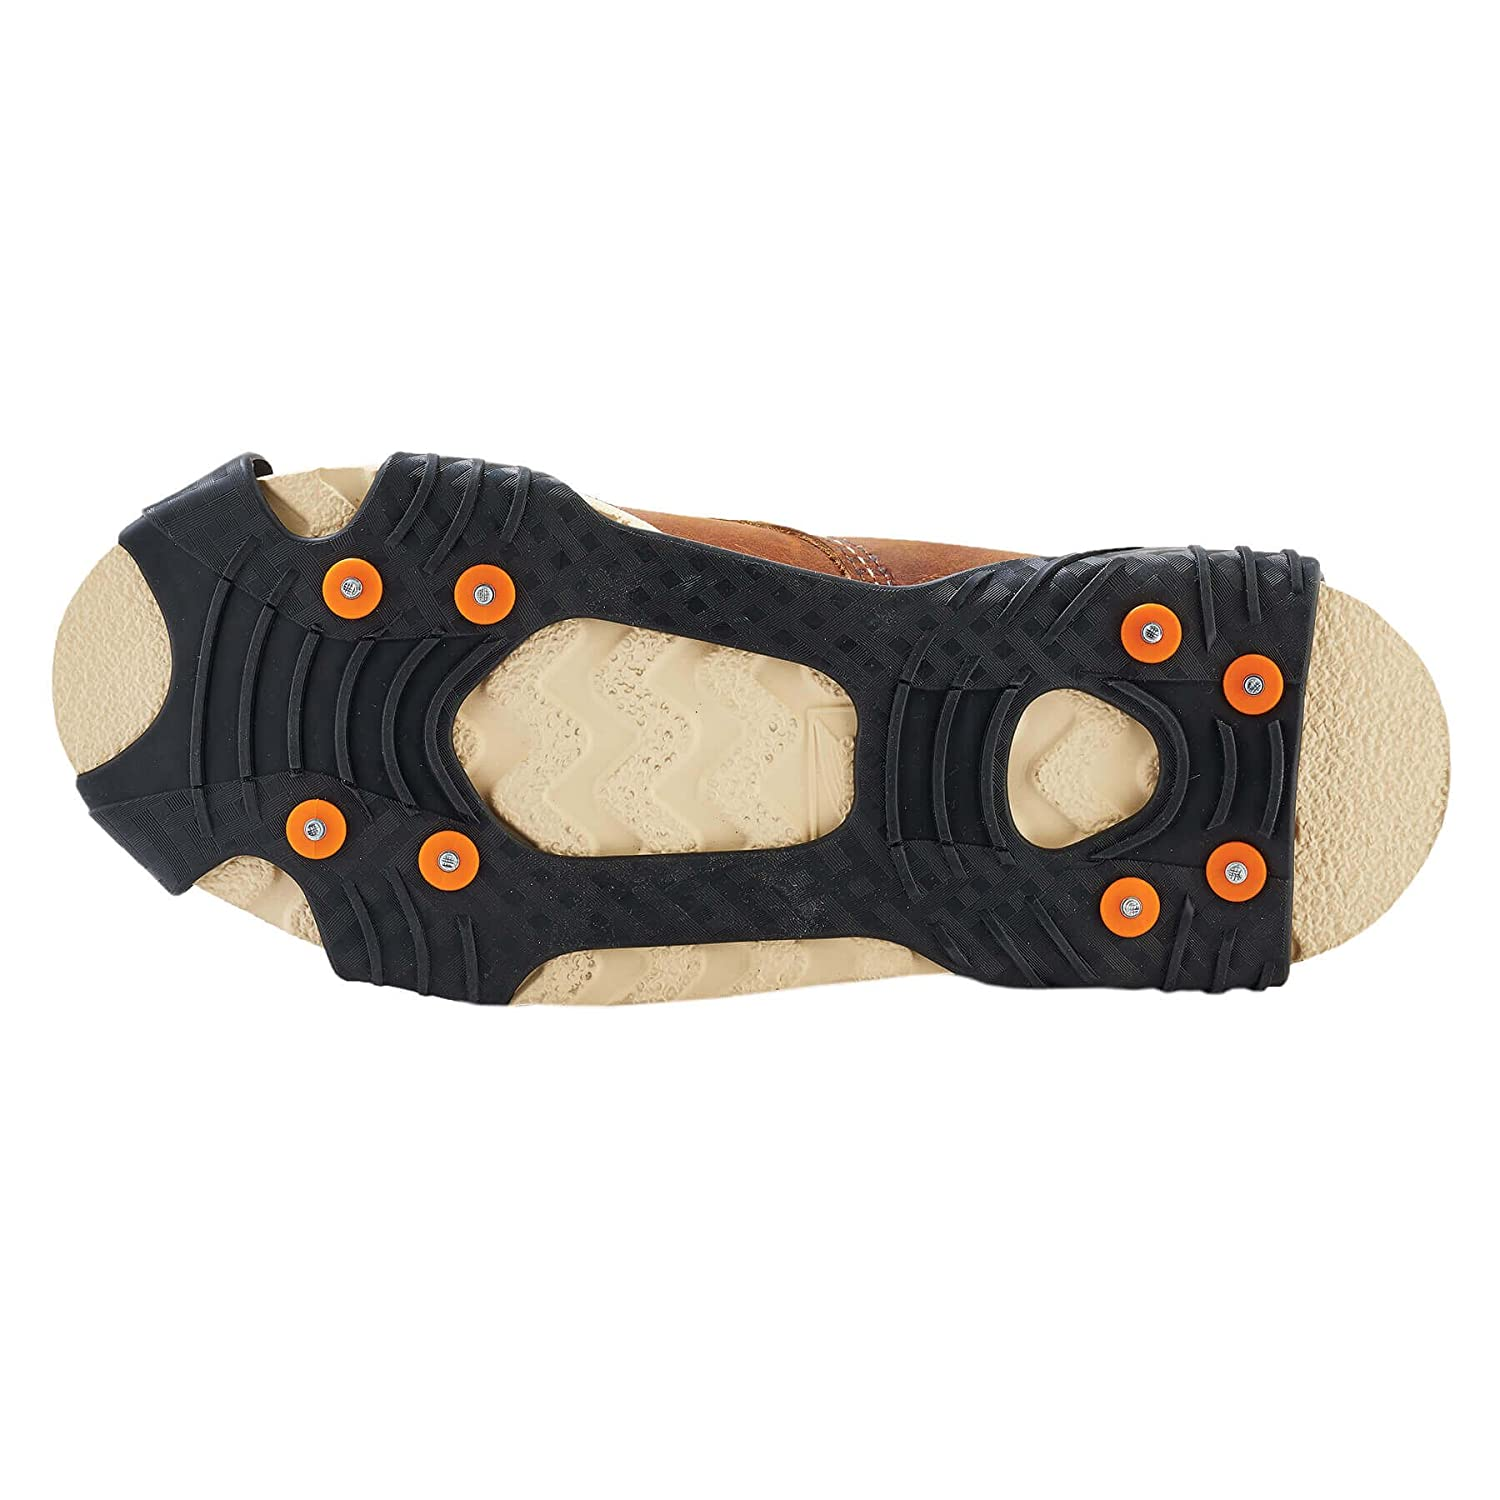 Amazon com TREX 6300 Traction Cleat Grips Ice and Snow One Piece Easily Attaches Over Shoe/Boot with Carbon Steel Spikes to Provide Anti Slip Solution